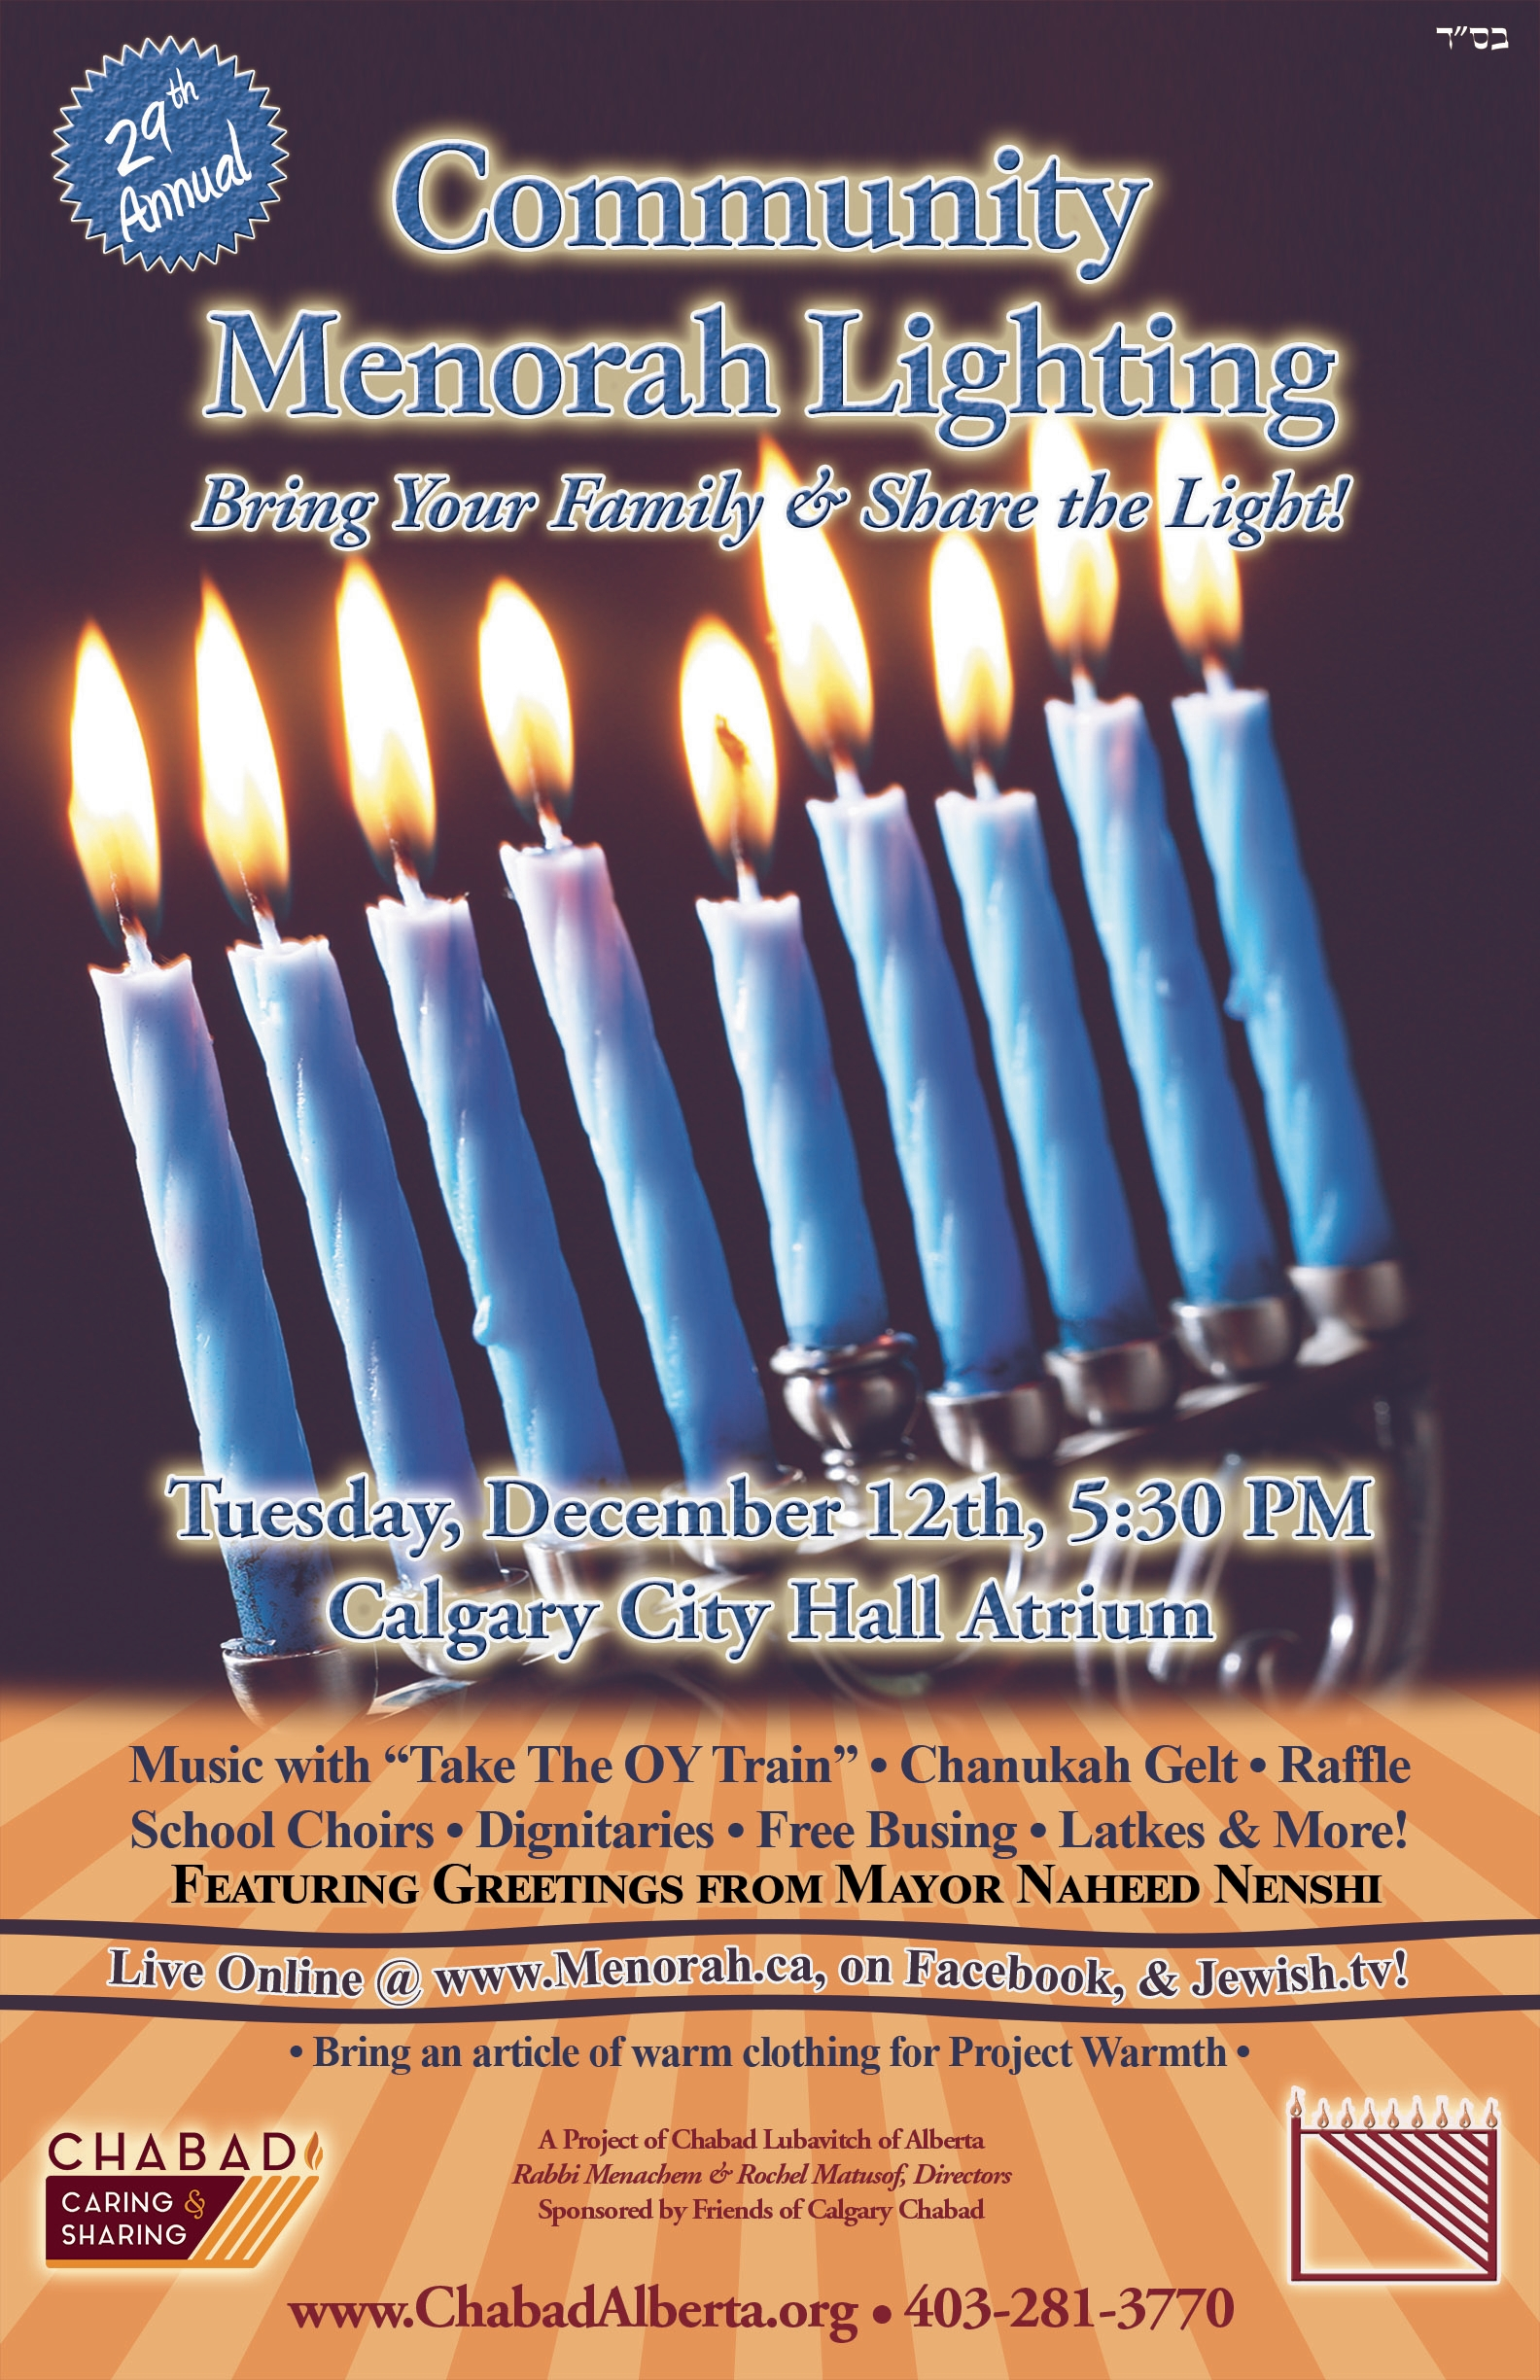 Flyer Chabad Lubavitch Of Alberta